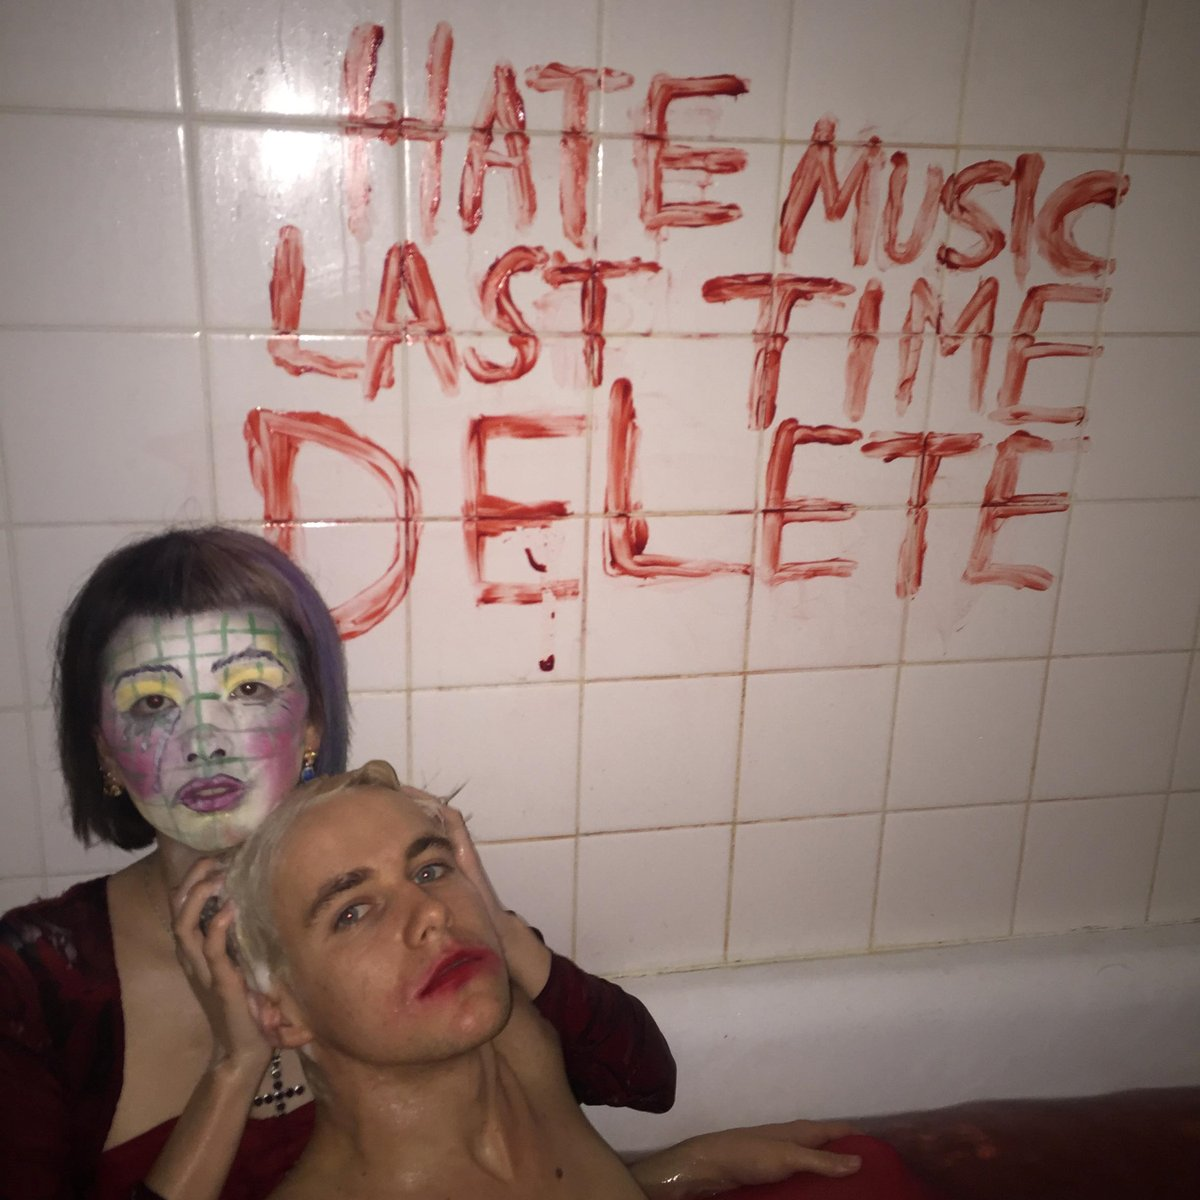 """HMLTD - Hate Music Last Time Deleted   Engineer on """"Mannequin"""" and """"Apple Of My Eye"""""""